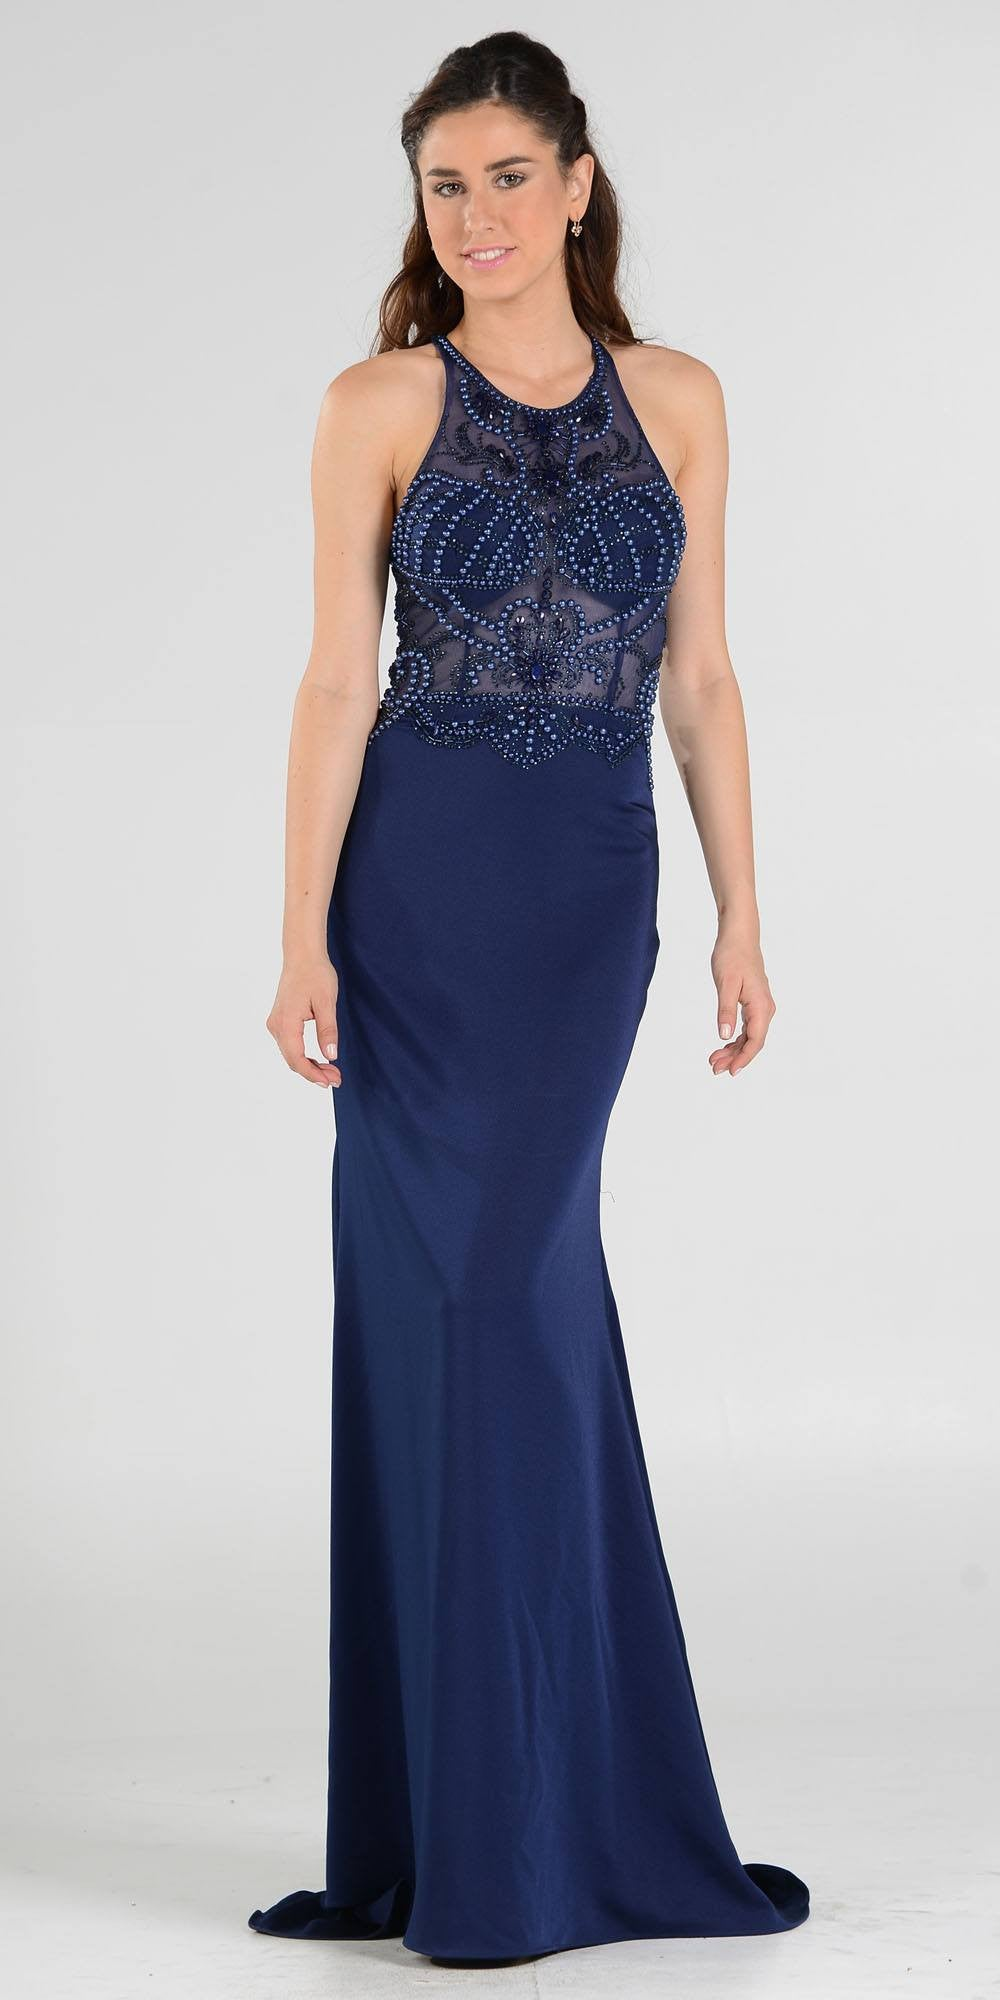 Sheer Beaded Bodice Racer Cut-Out Back Mermaid Evening Gown Navy ...